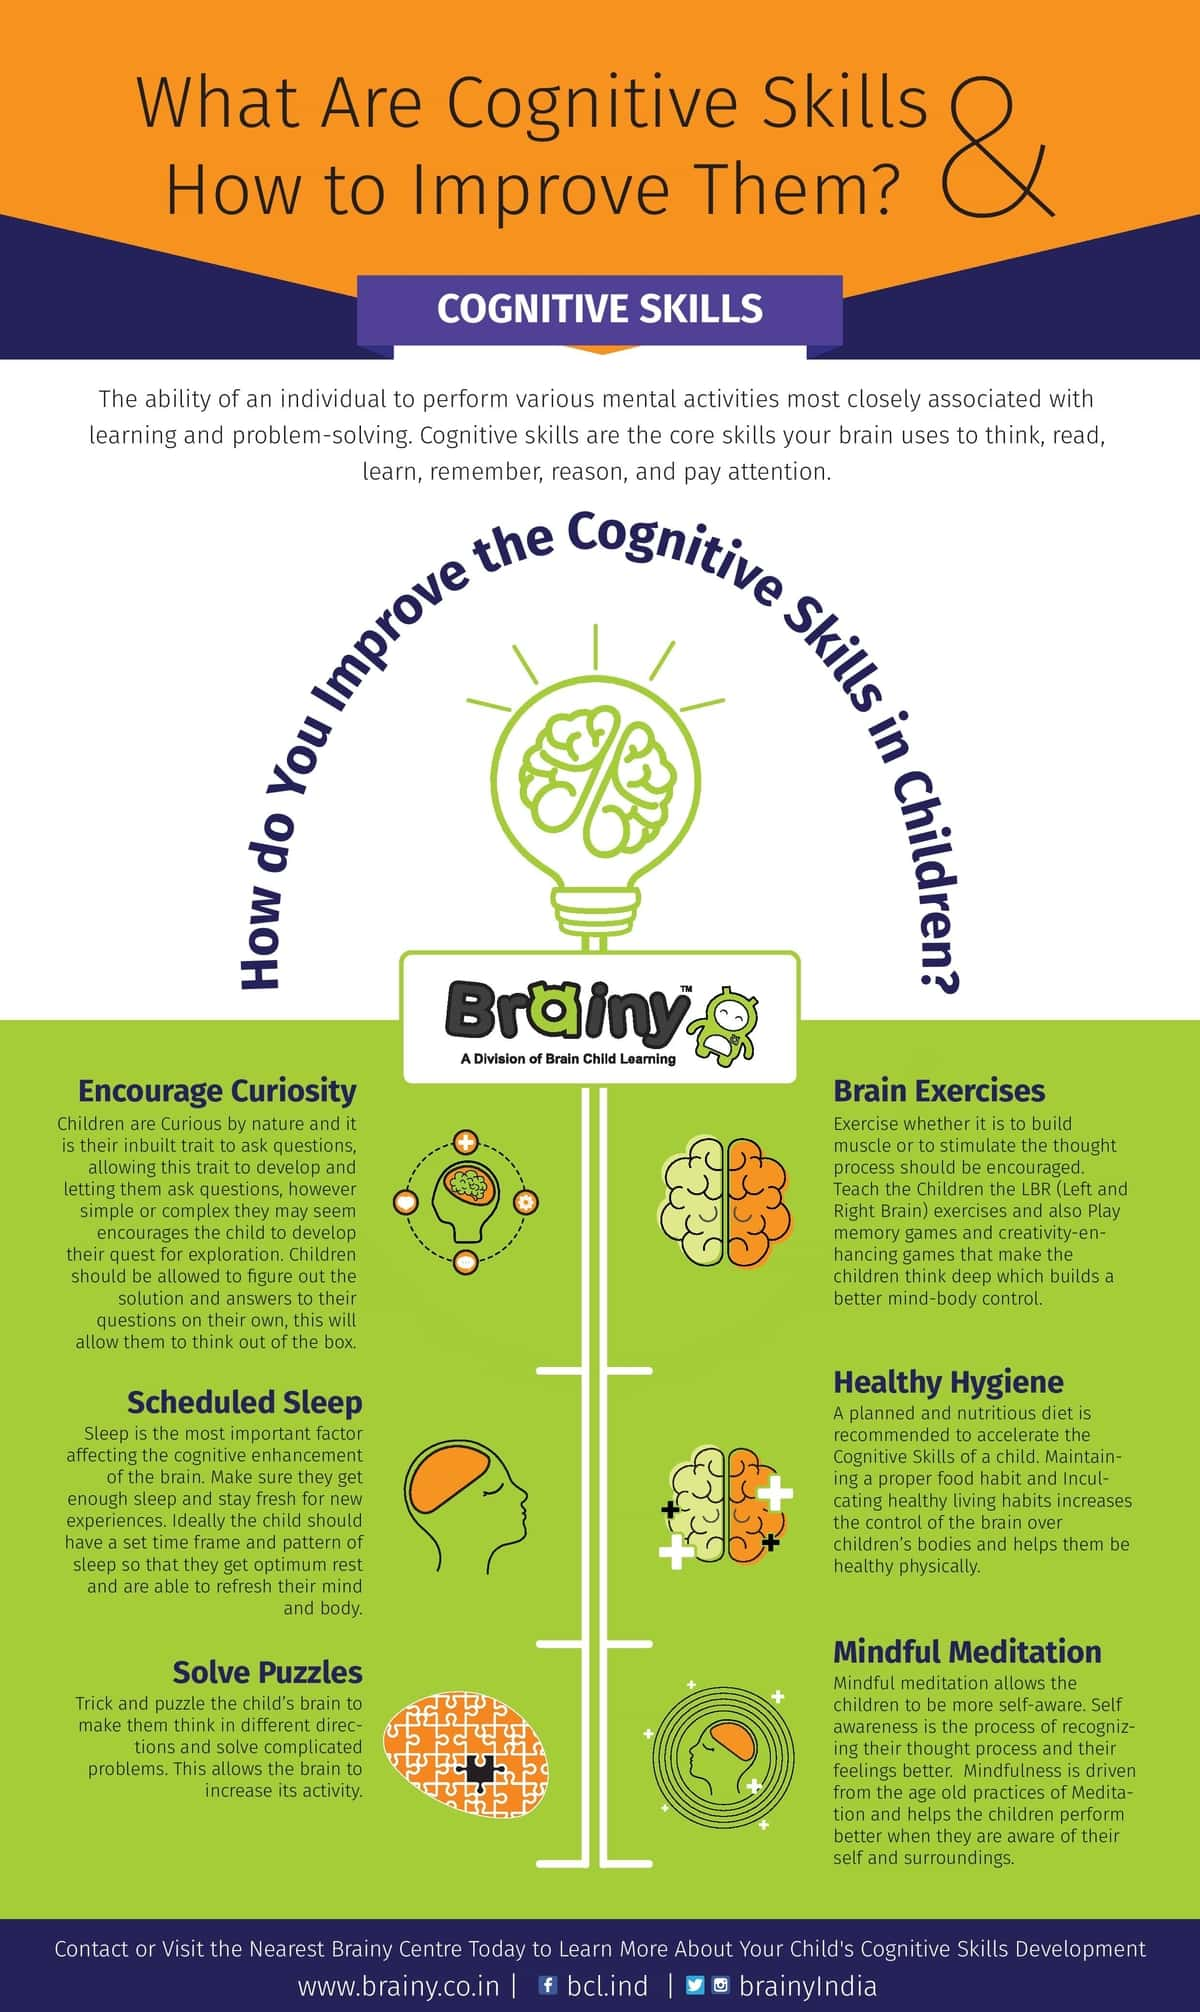 What Are Cognitive Skills & How to Improve a Child's Cognitive Skills?